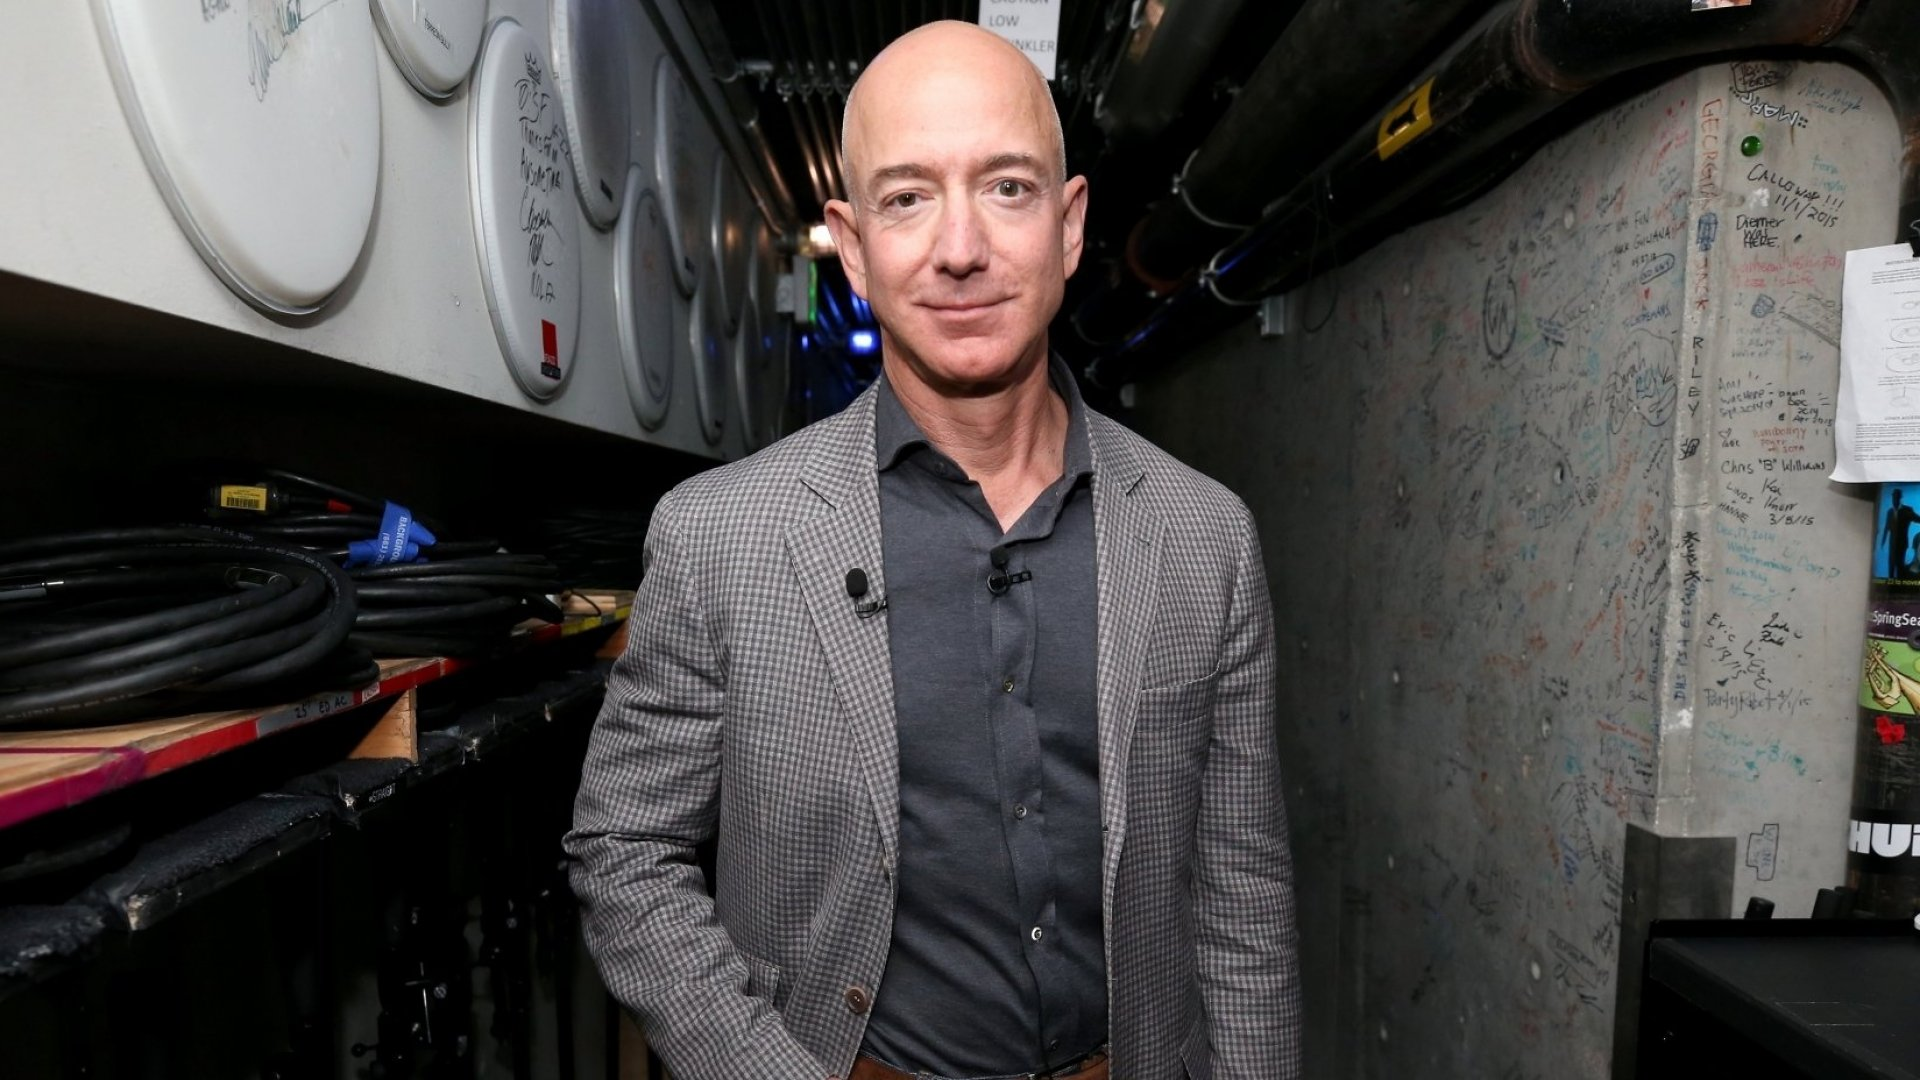 In 8 Words to His Kids, Jeff Bezos Explains What It Means to Be a Highly Successful Leader